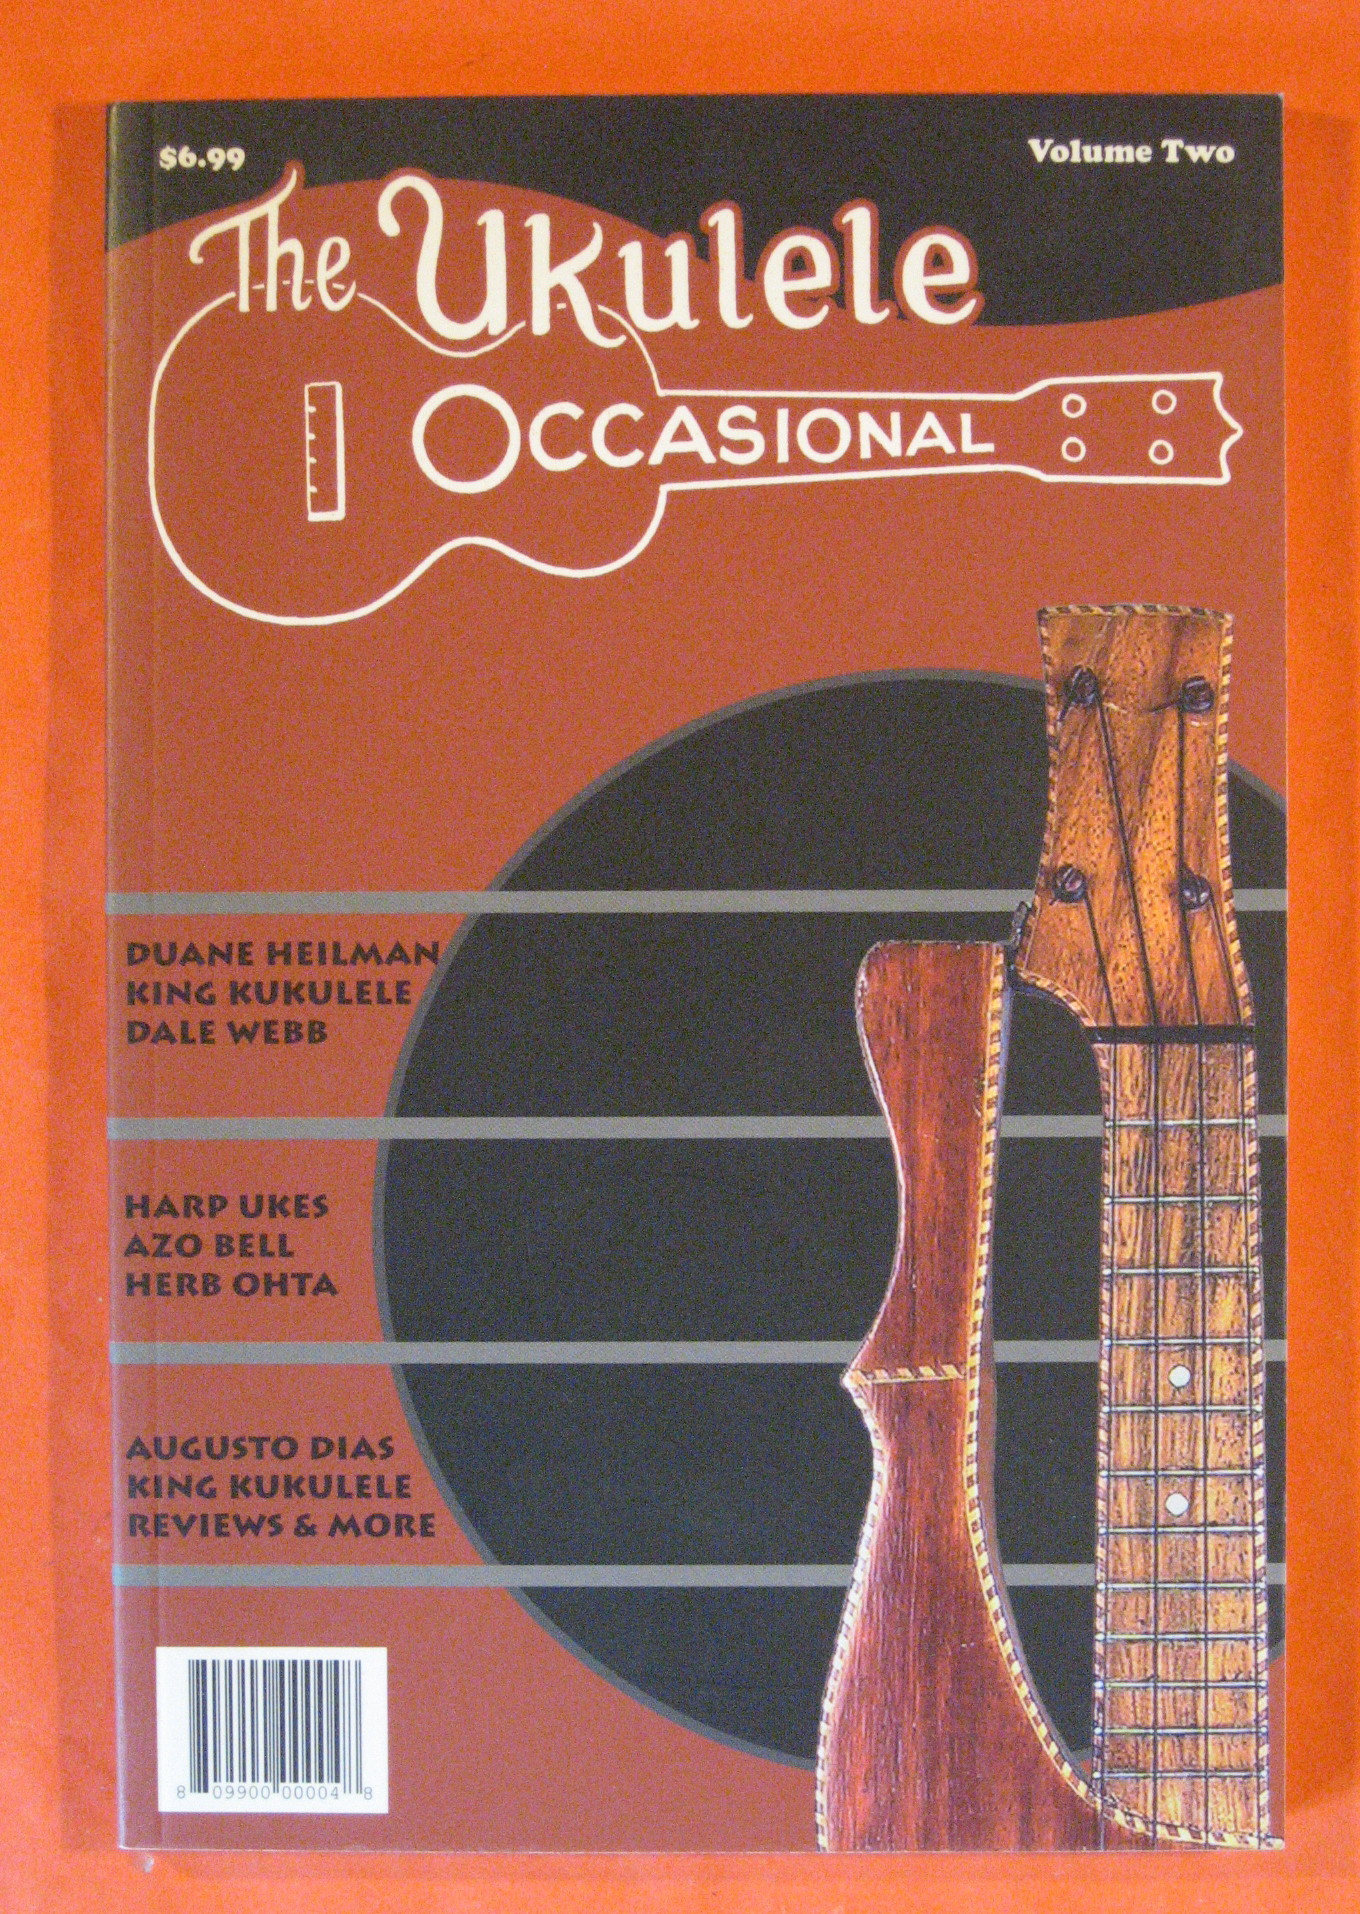 Ukulele Occasional;  Volume Two, The